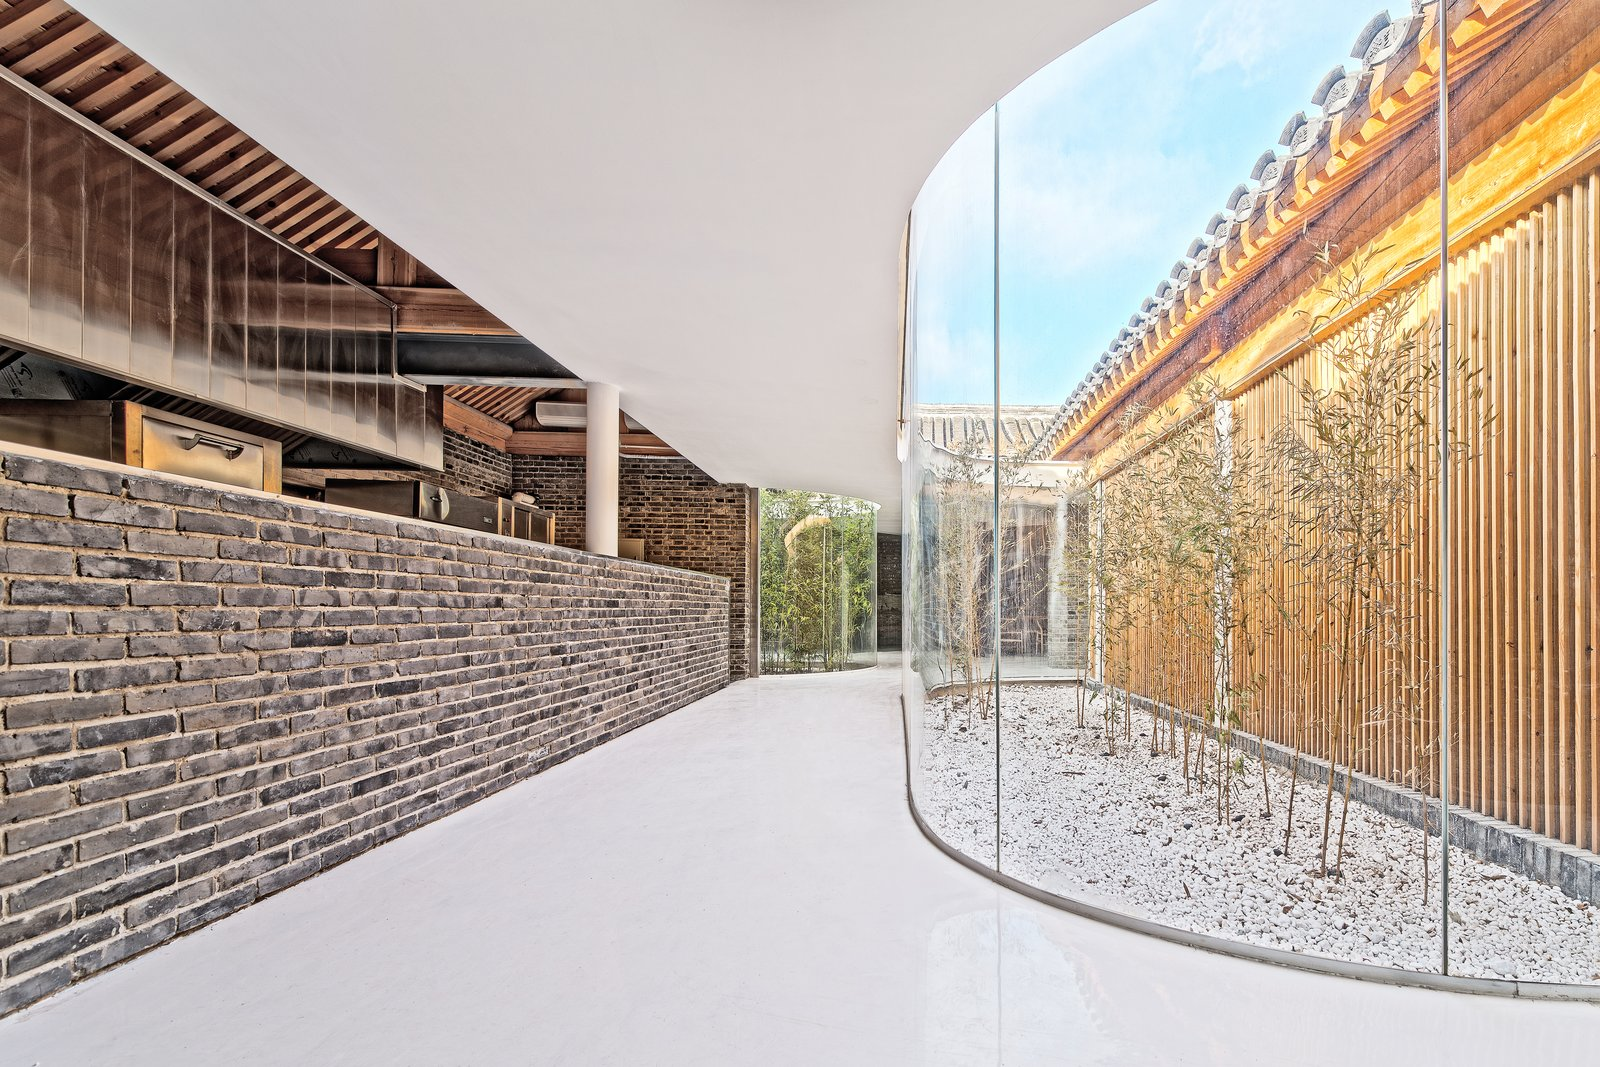 To ensure modern temperature control, the building had to be enclosed. The architects installed transparent glass walls to create a constant visual connection to the building's historic features.  Photo 3 of 7 in An Historic Beijing Structure Gets a Modern Makeover